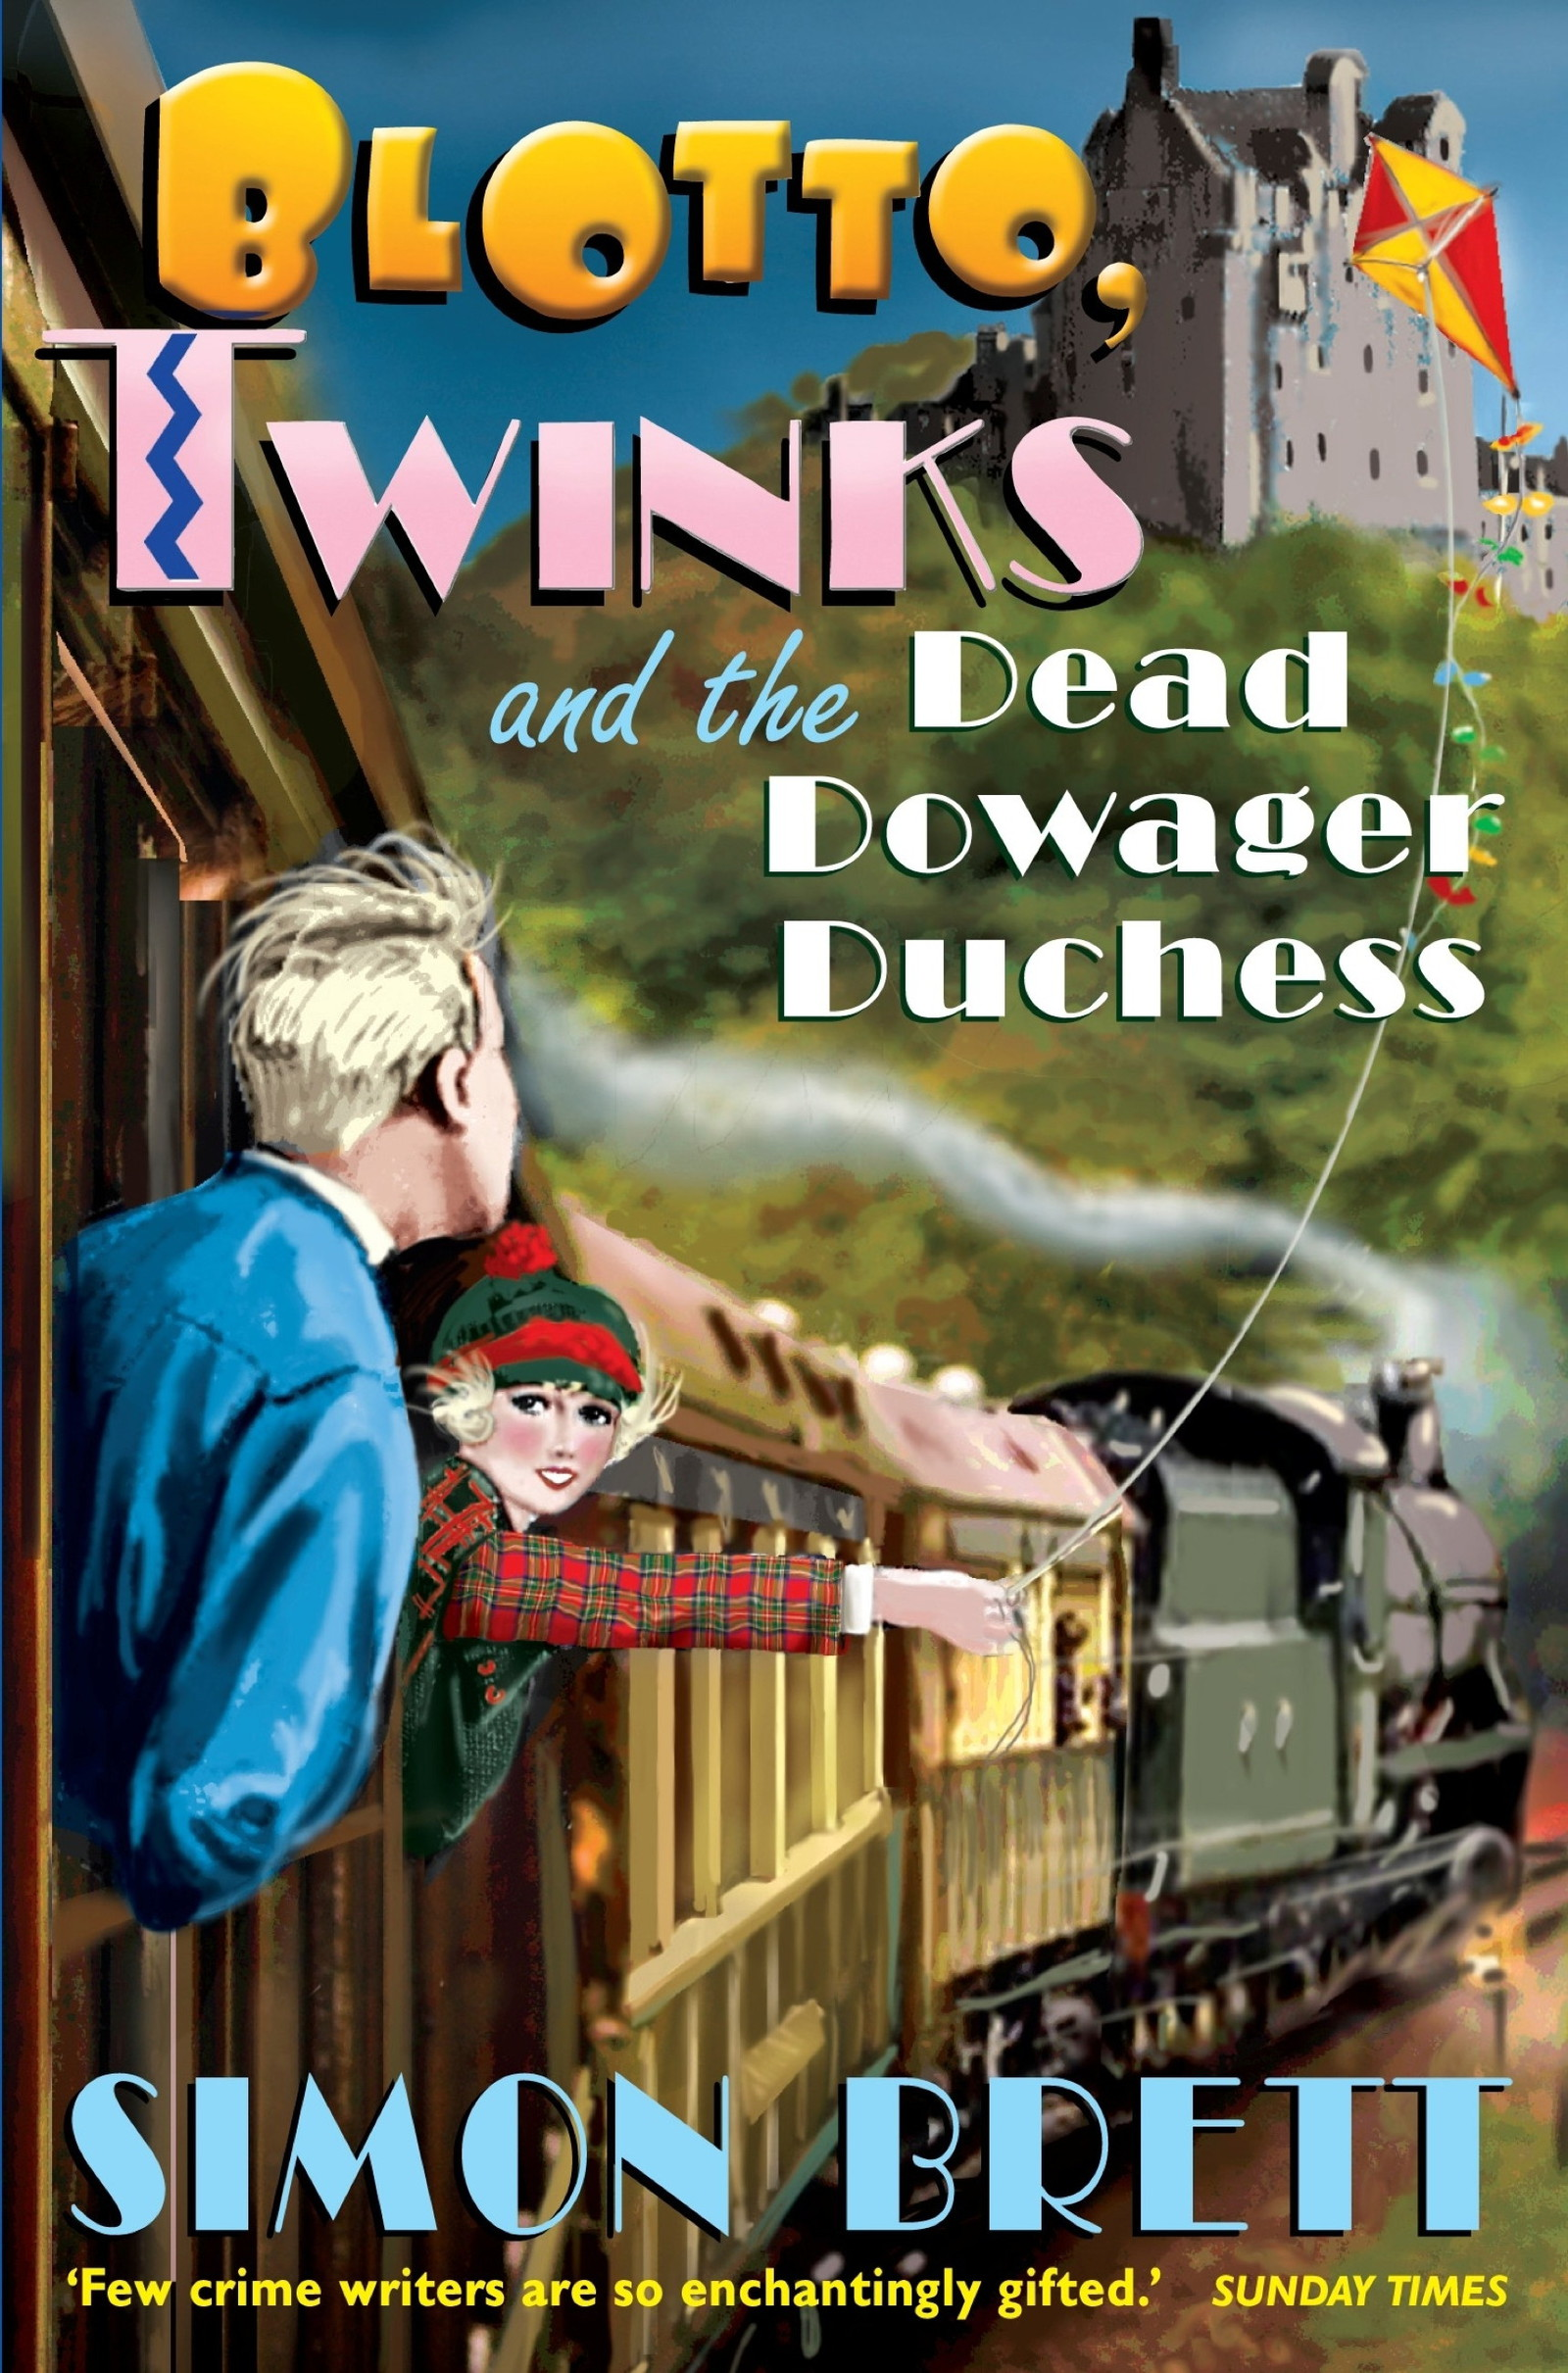 Blotto, Twinks and the Dead Dowager Duchess